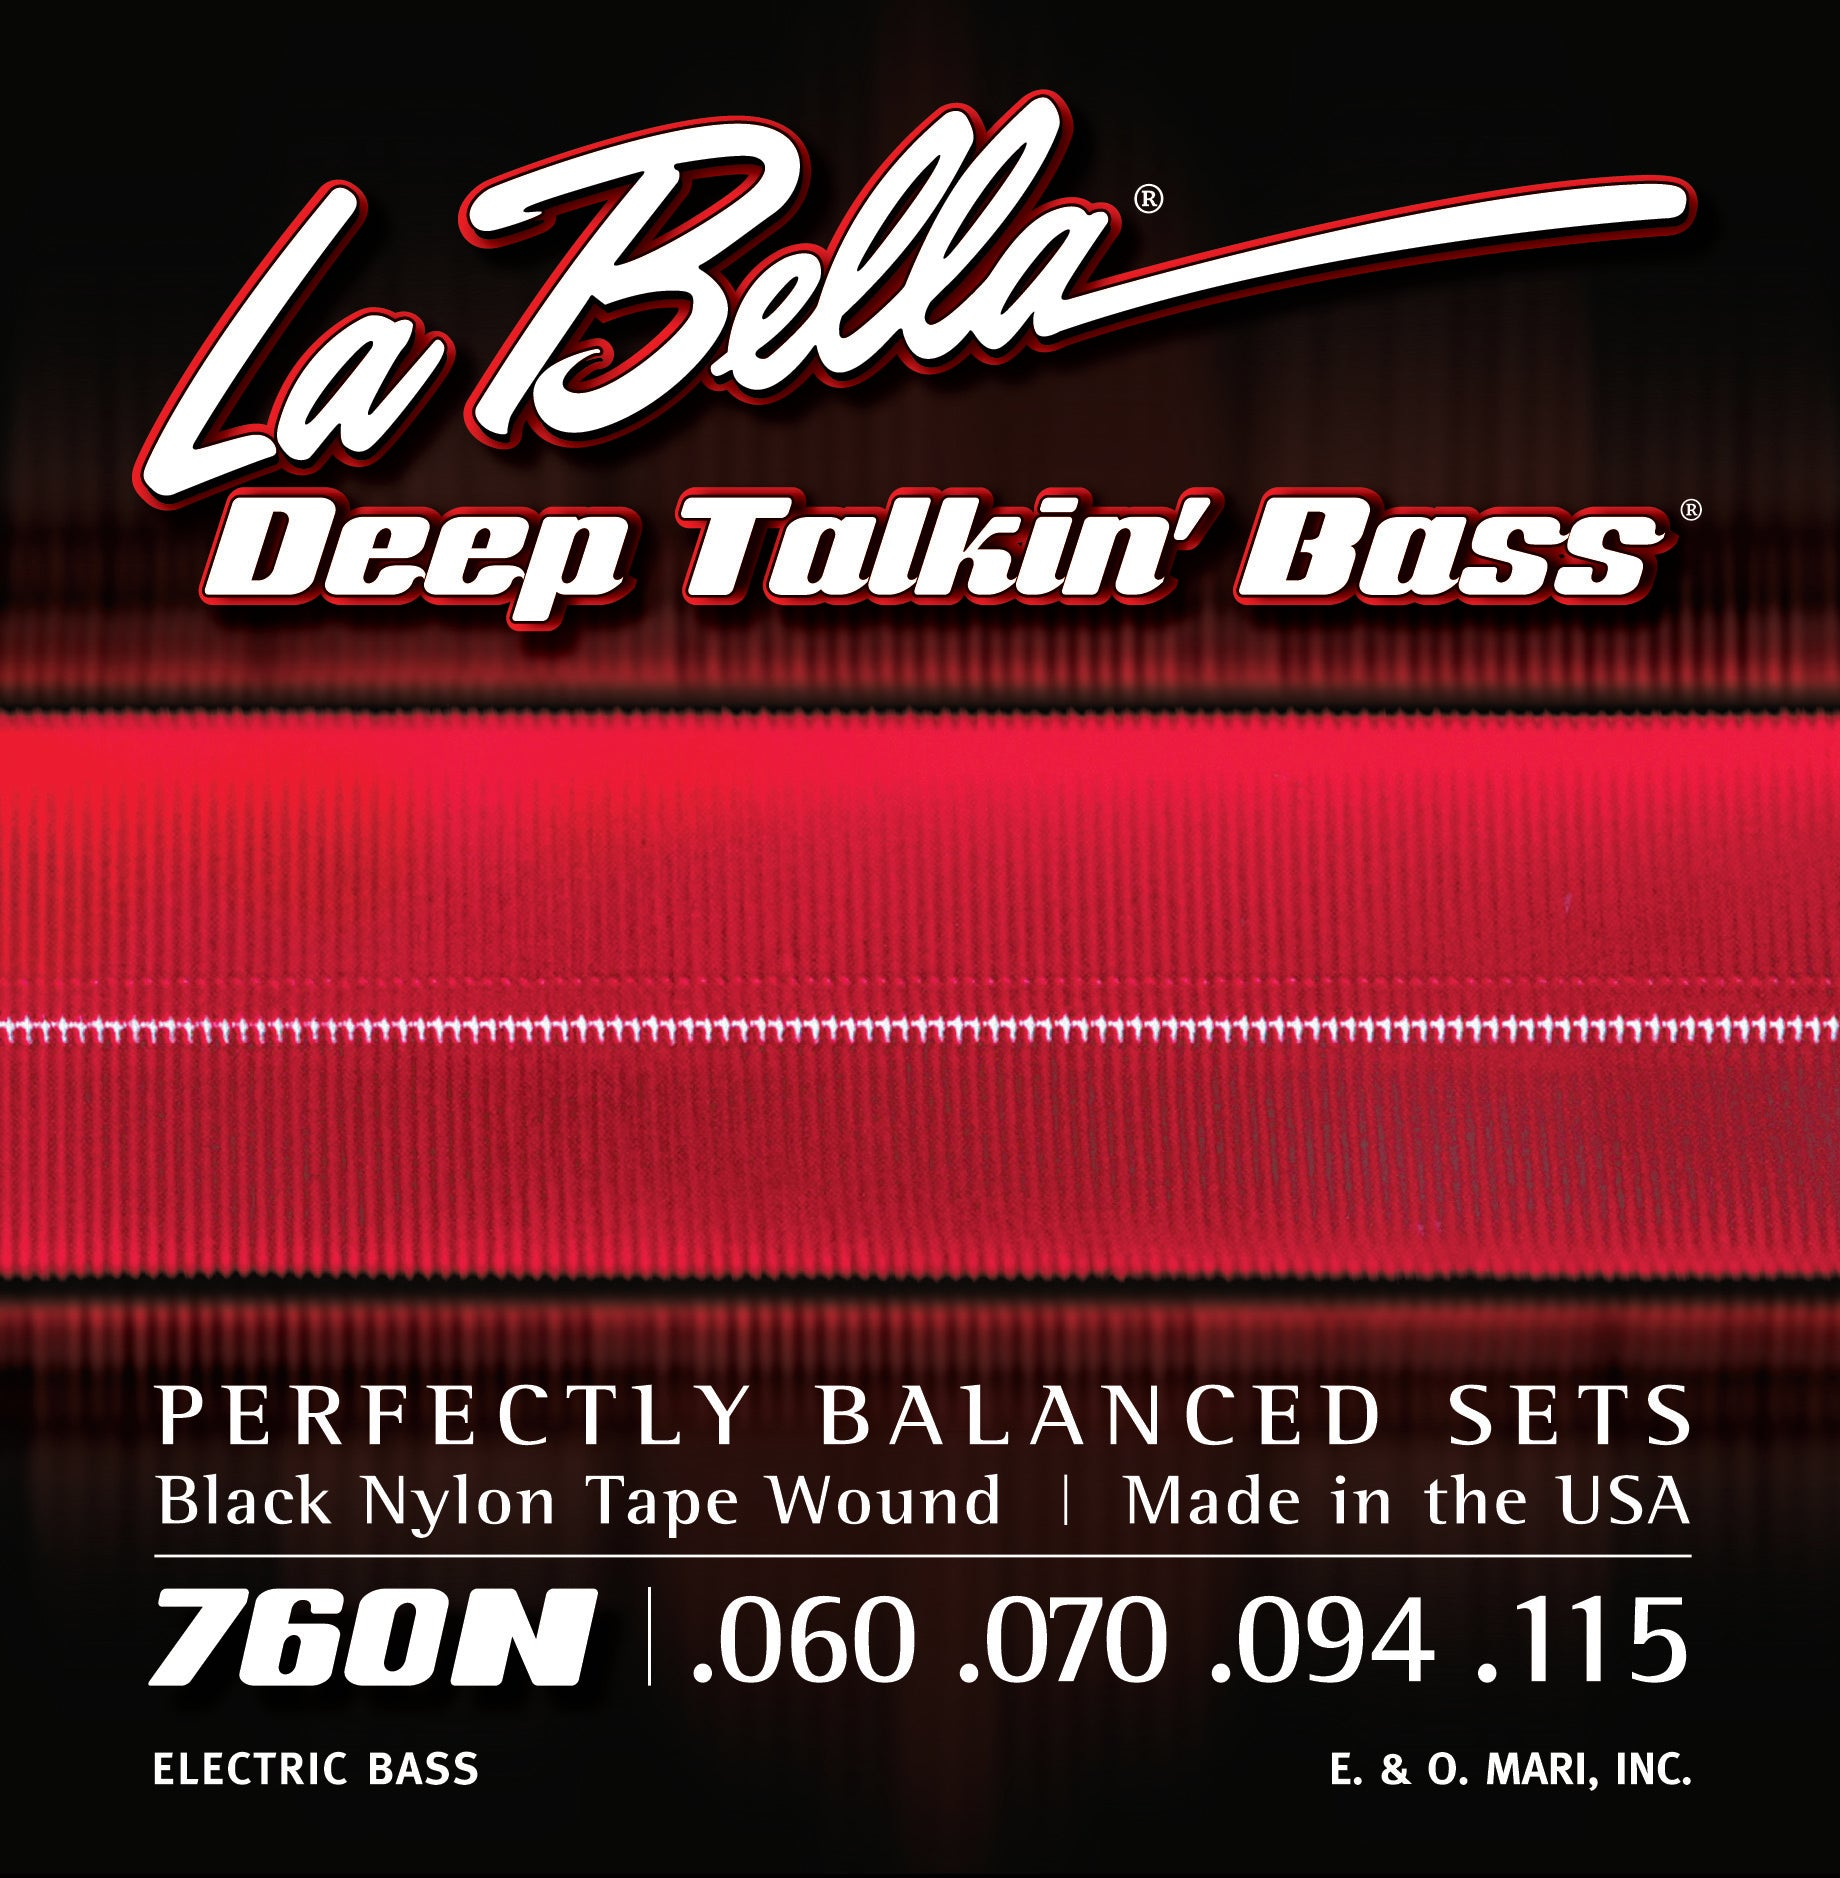 La Bella 760N DTB Black Nylon Tape Bass Strings - Standard 60-115